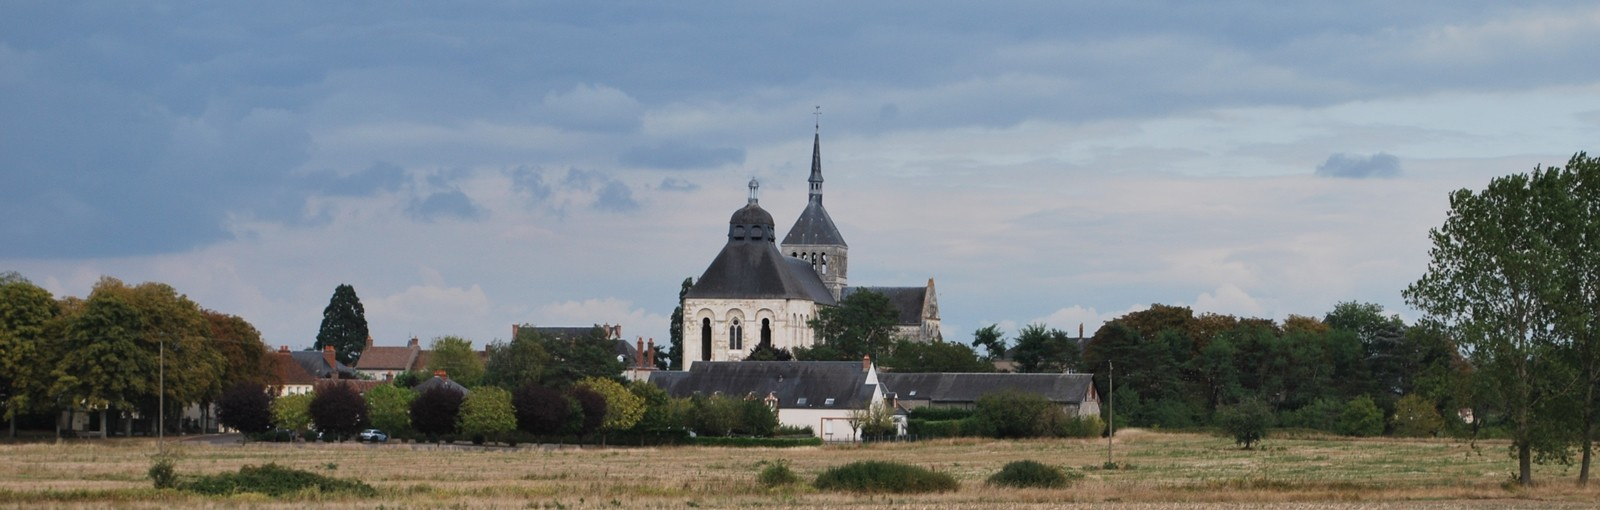 Tours ESCAPADES AND DELIGHTS IN LE LOIRET - Full days - Day tours from Paris